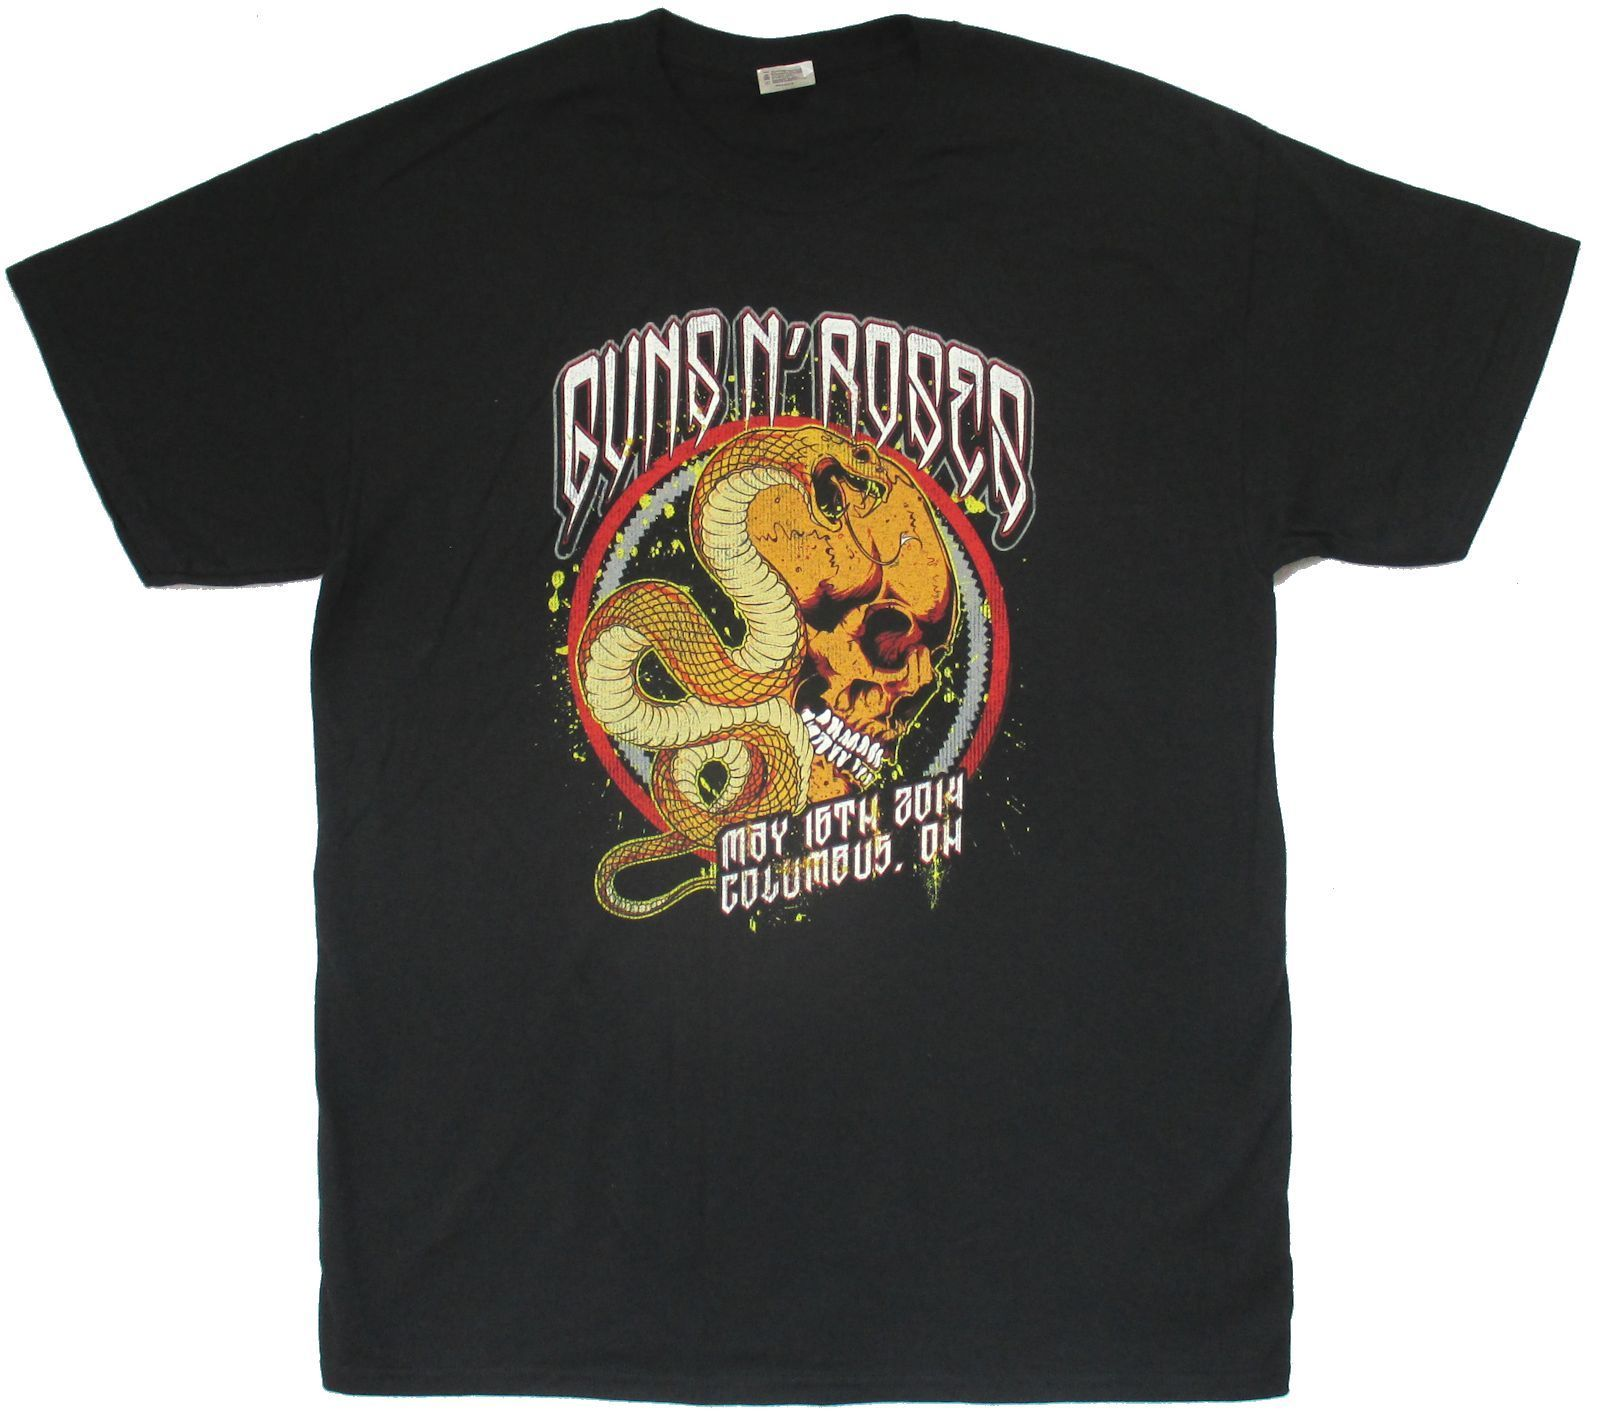 GUNS N ROSES SNAKE SKULL OHIO 2014 EVENT BLACK T-SHIRT NEW OFFICIAL